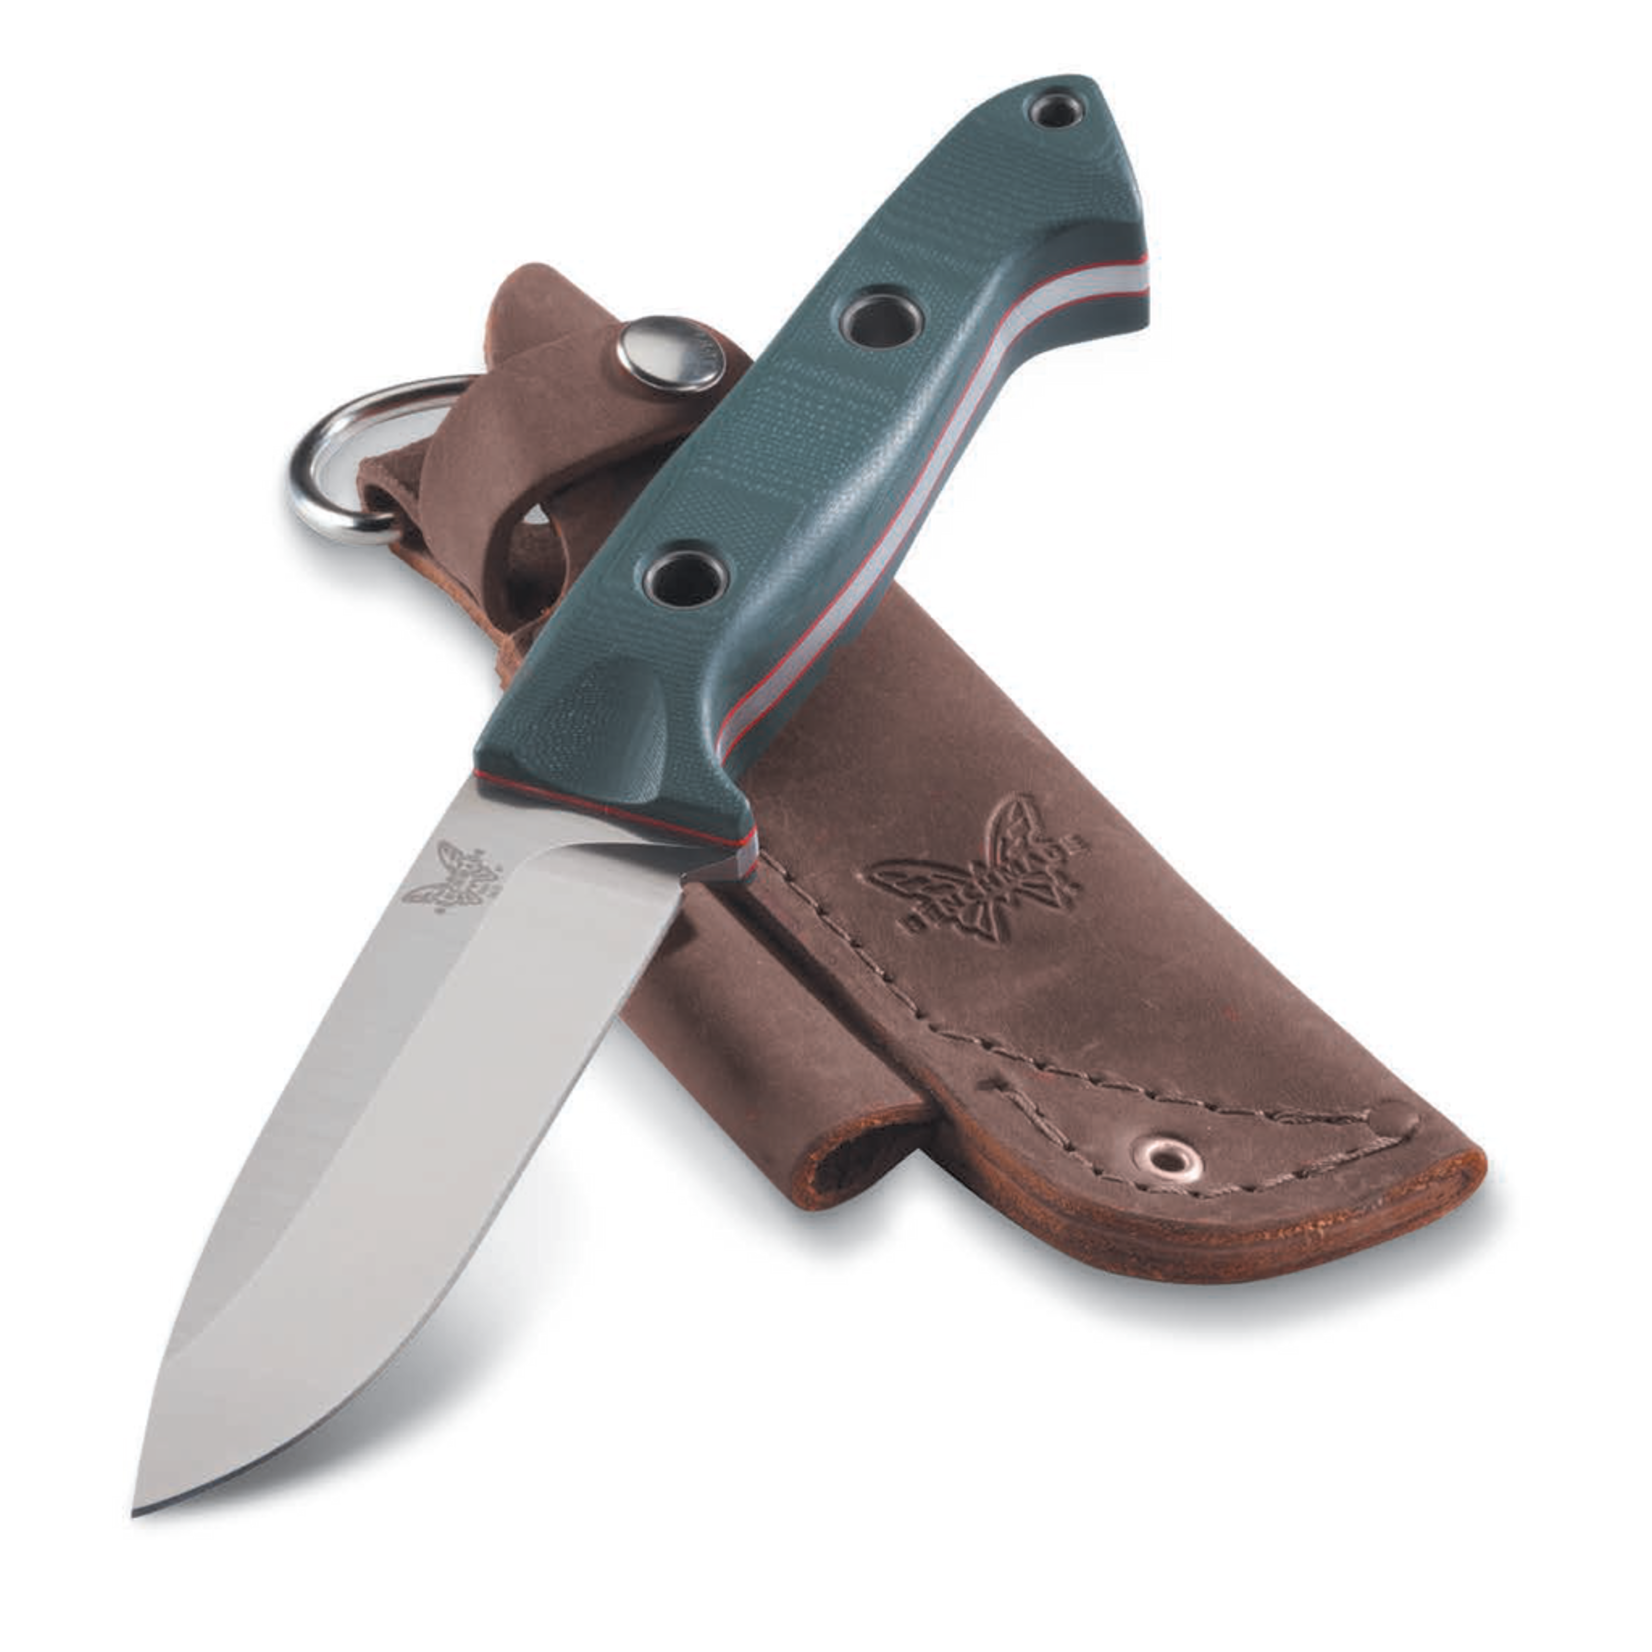 Benchmade Benchmade Bushcrafter